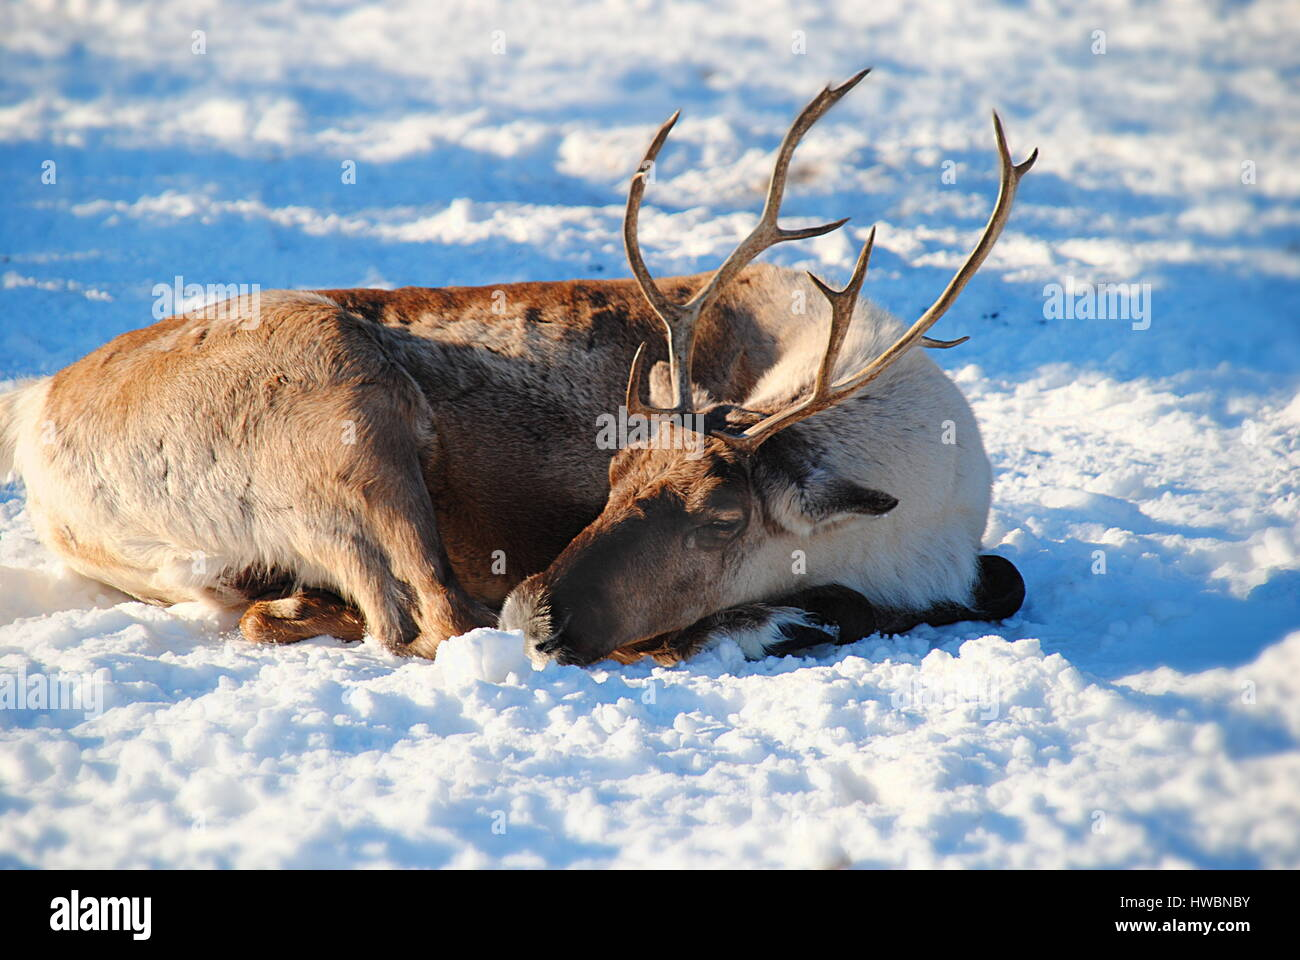 Woodland Caribou in the snow, Calgary Zoo, Canada - Stock Image